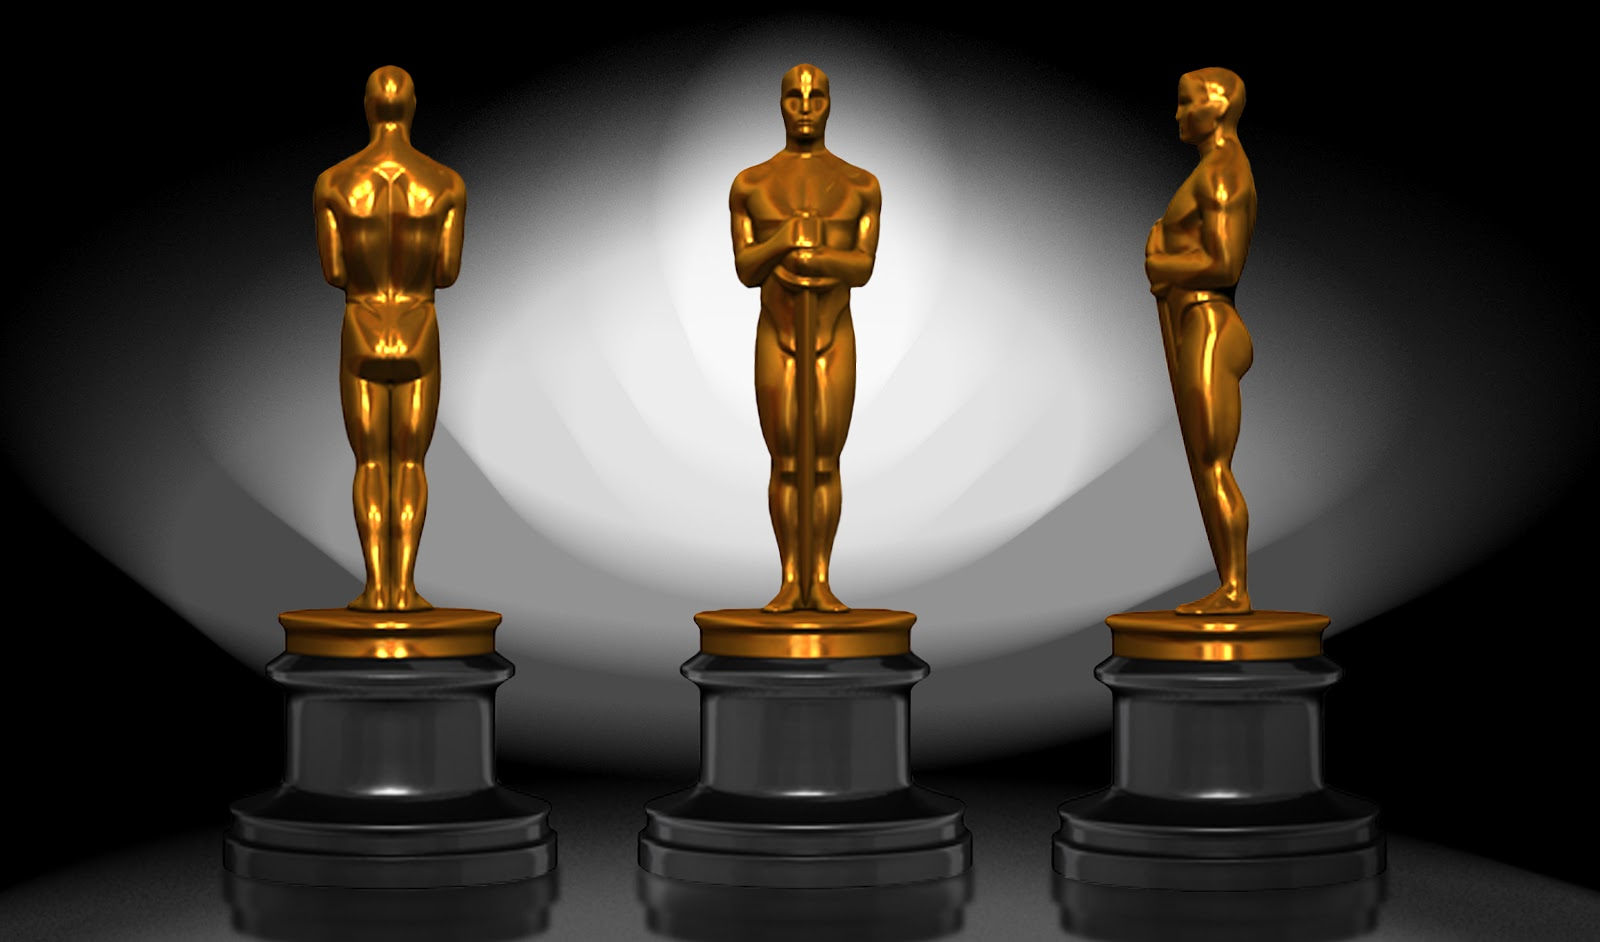 3D Technology Applied to New Oscar Statuettes